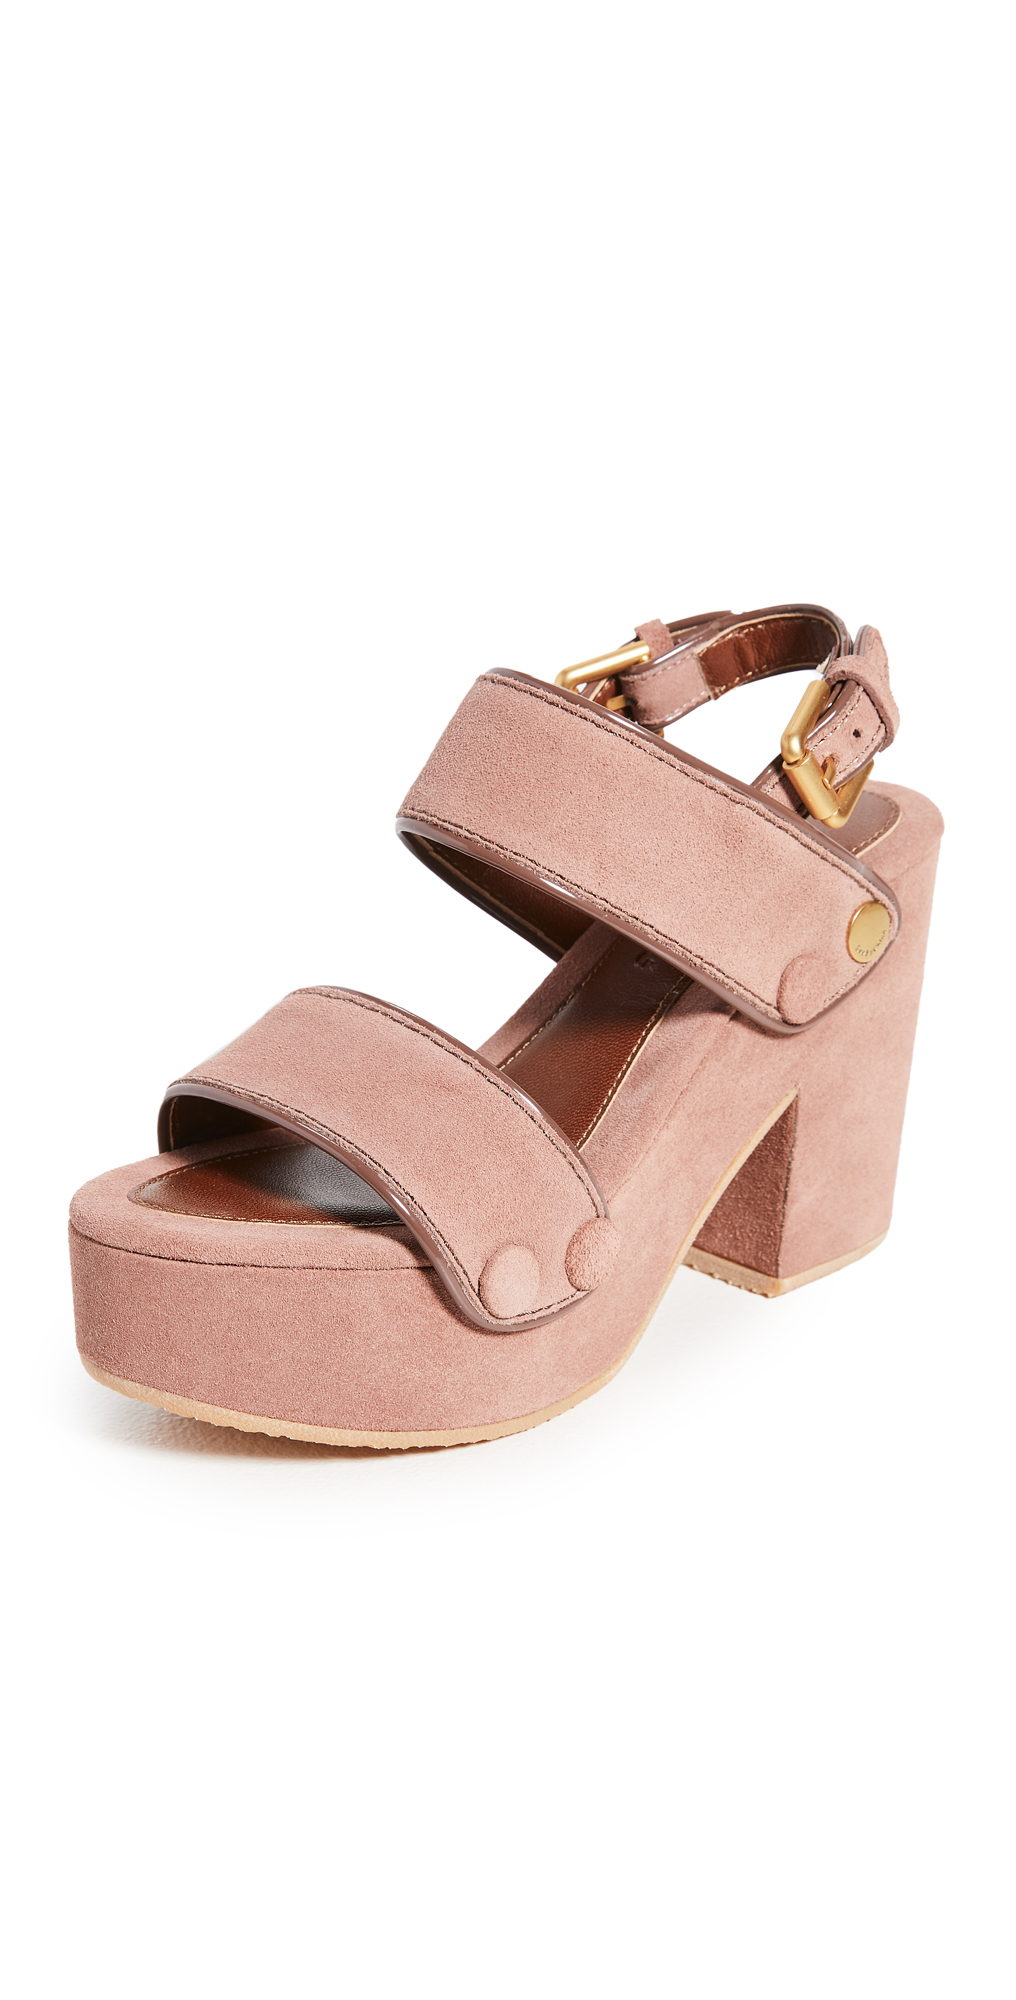 See By Chloé High heels GALY SANDALS